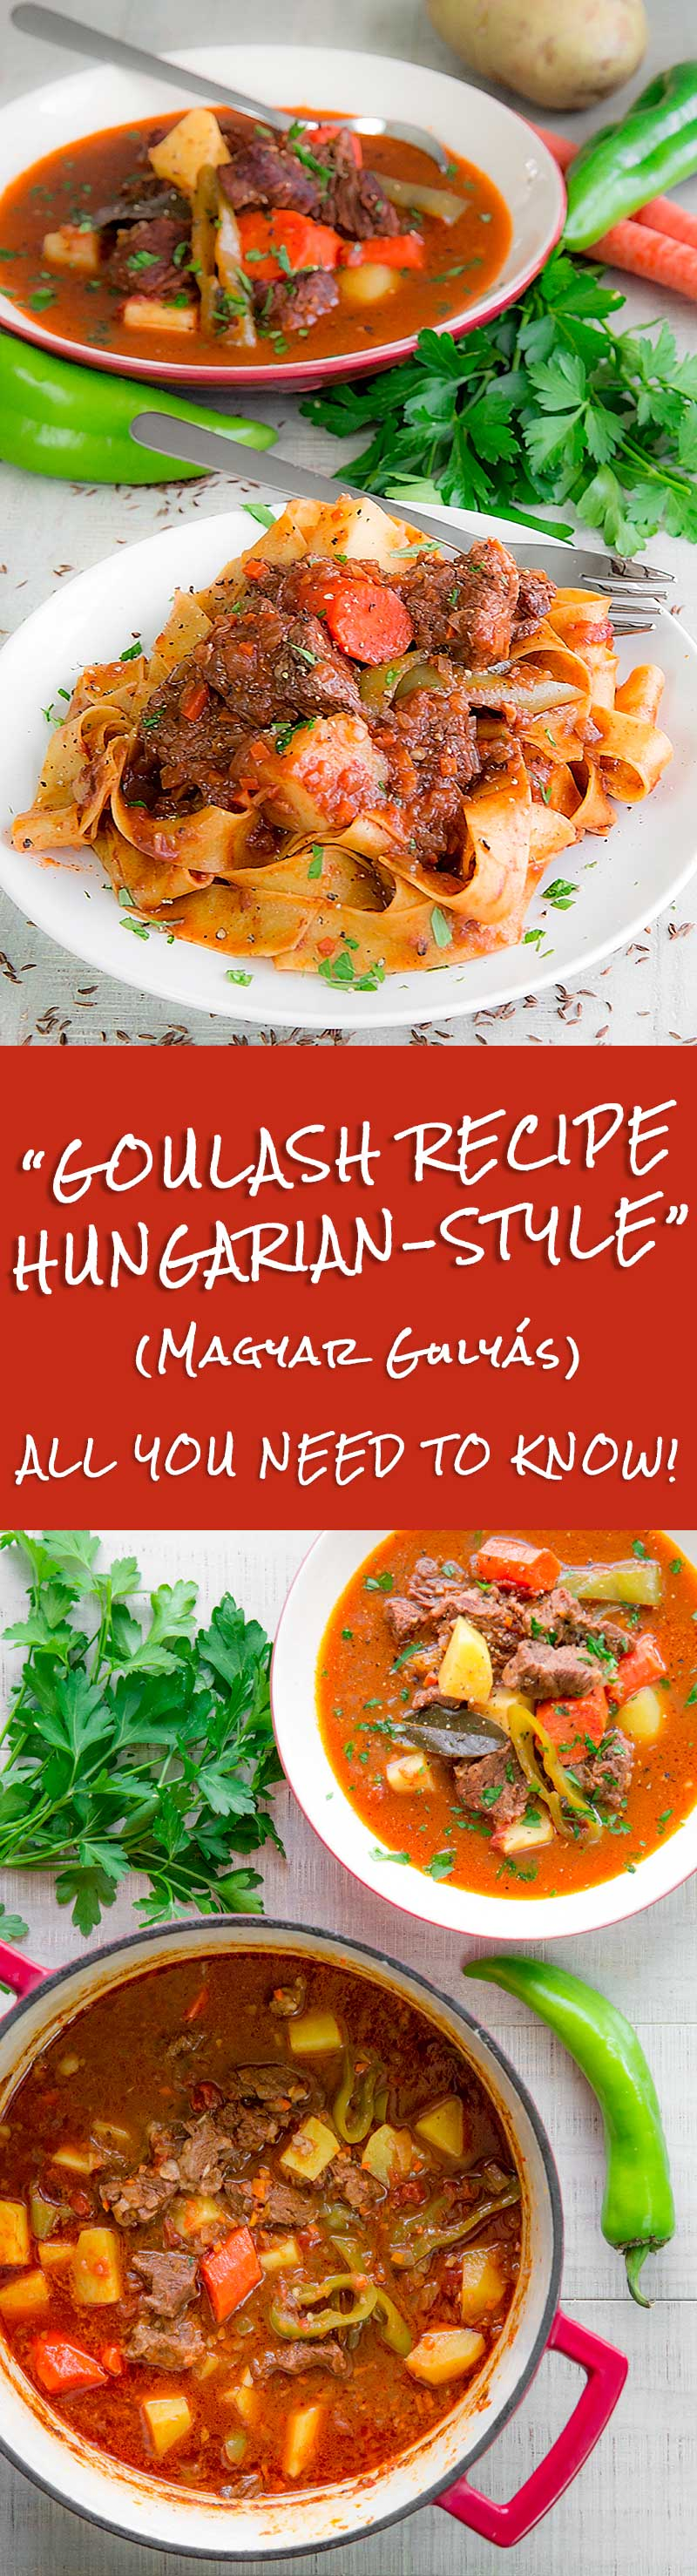 The Hungarian goulash recipe is one of the most typical dishes of East Europe. A country recipe become a masterpiece of the comfort food culture!